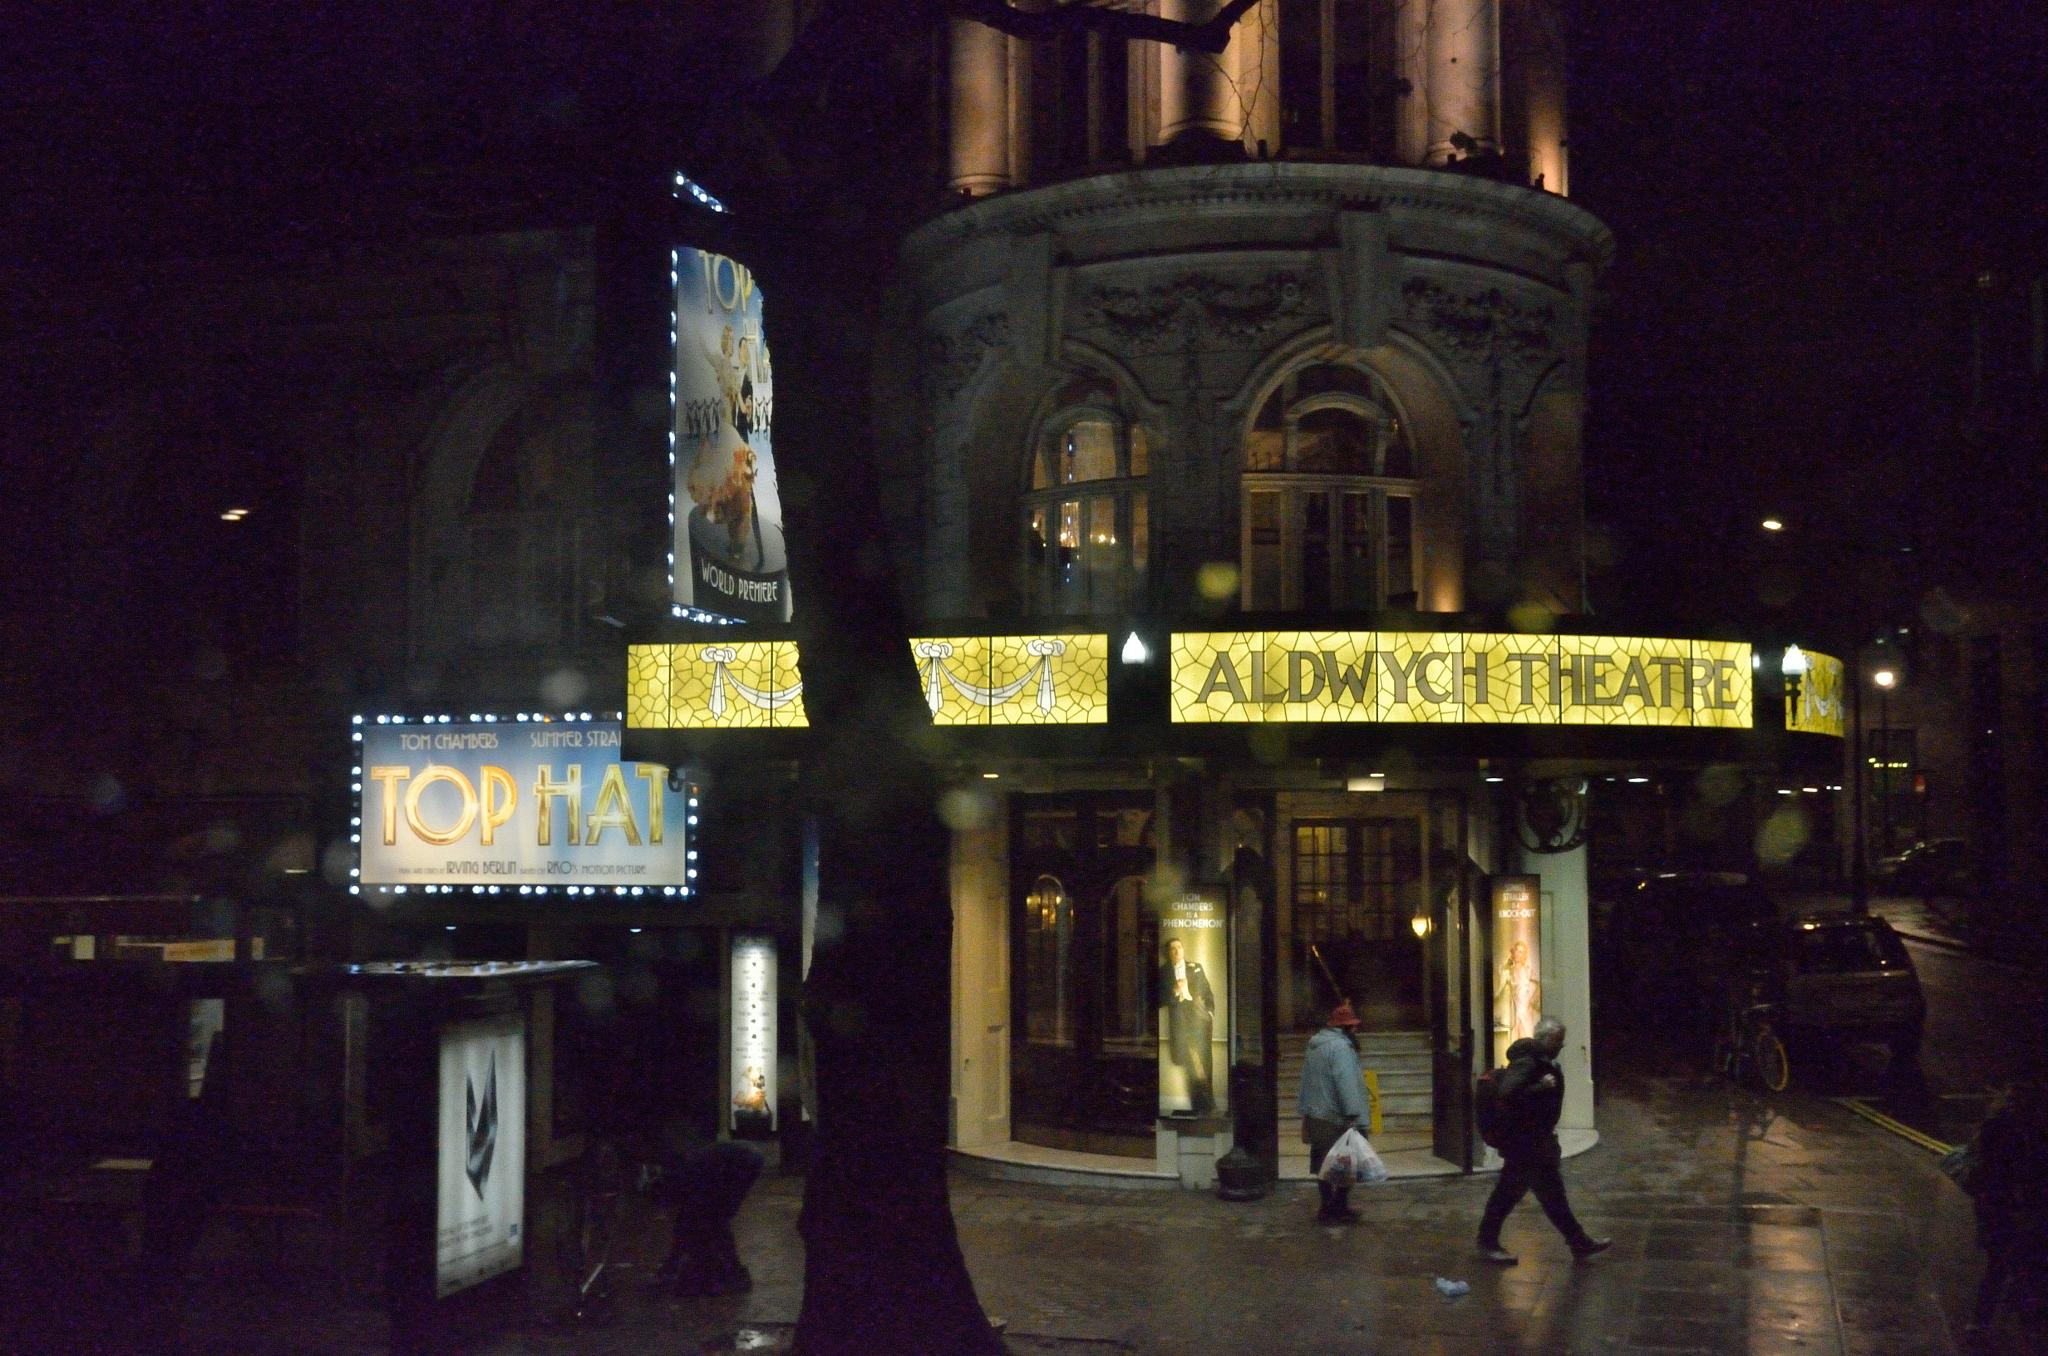 Theatre by fotomus